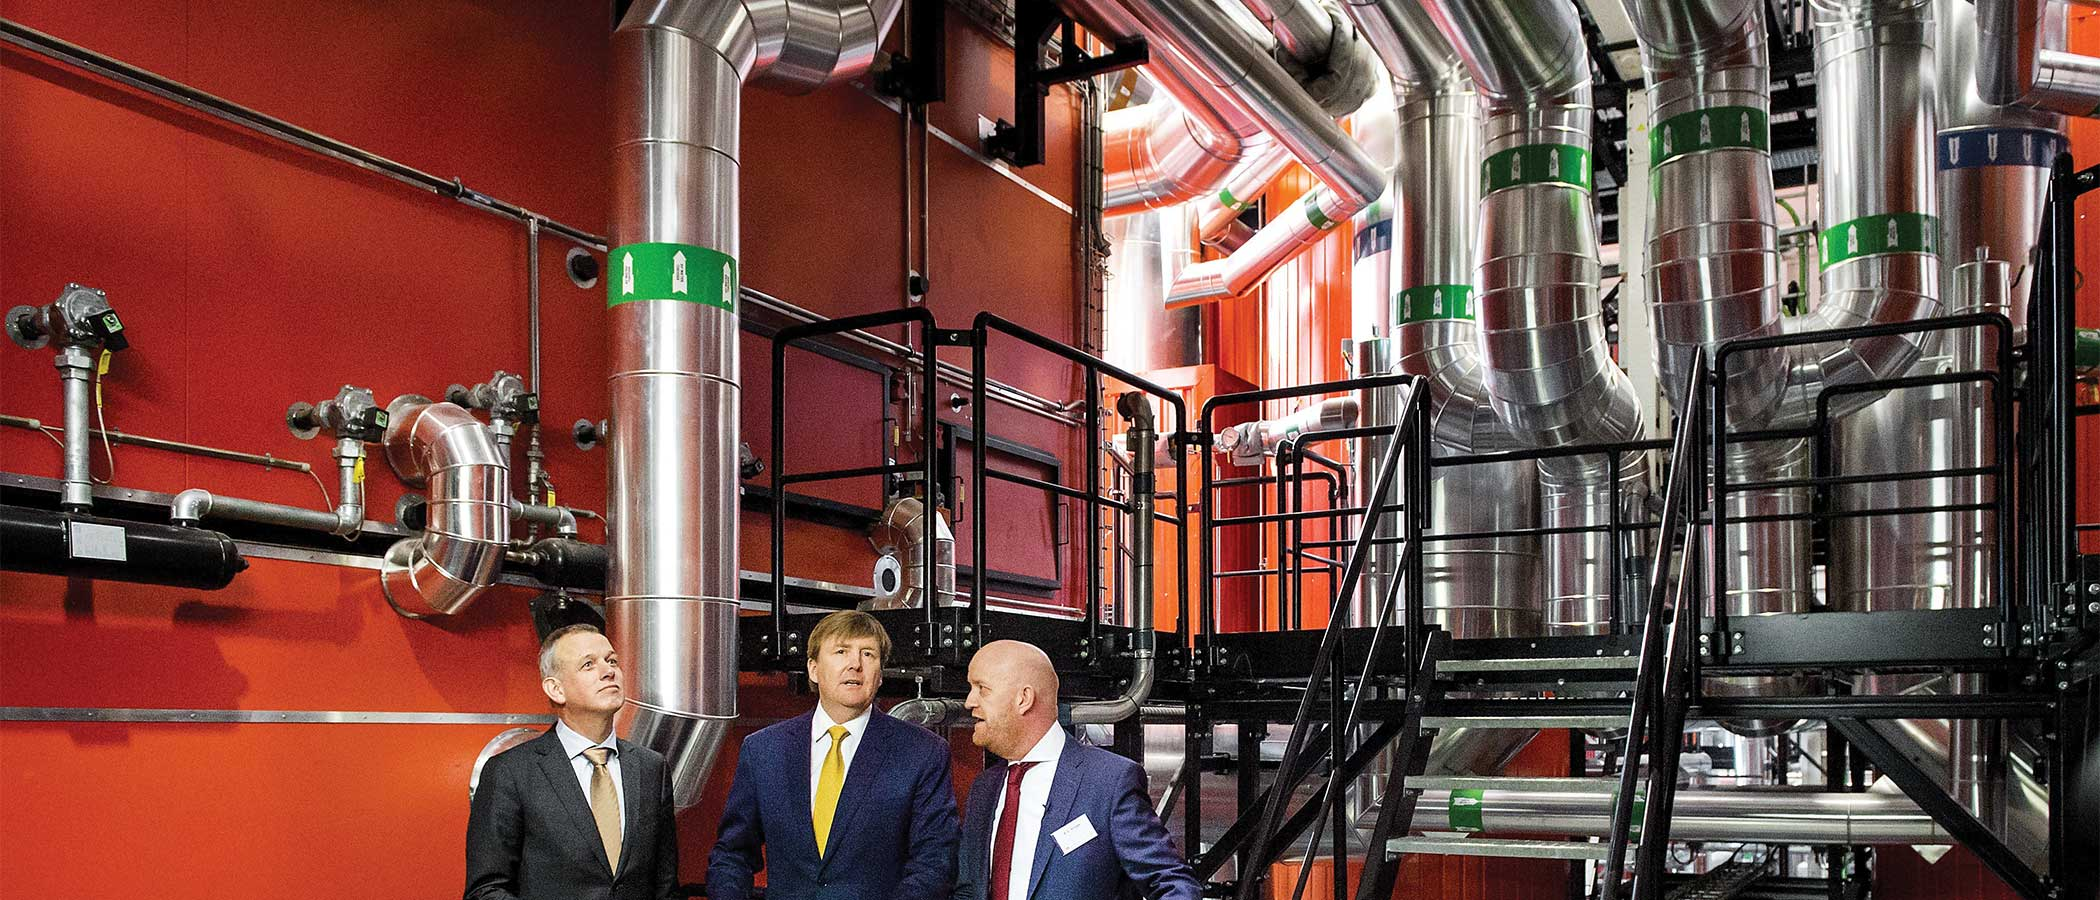 Dutch king Willem-Alexander attends the opening of BioWarmteCentrale (bioheating station) in Purmerend, the Netherlands.